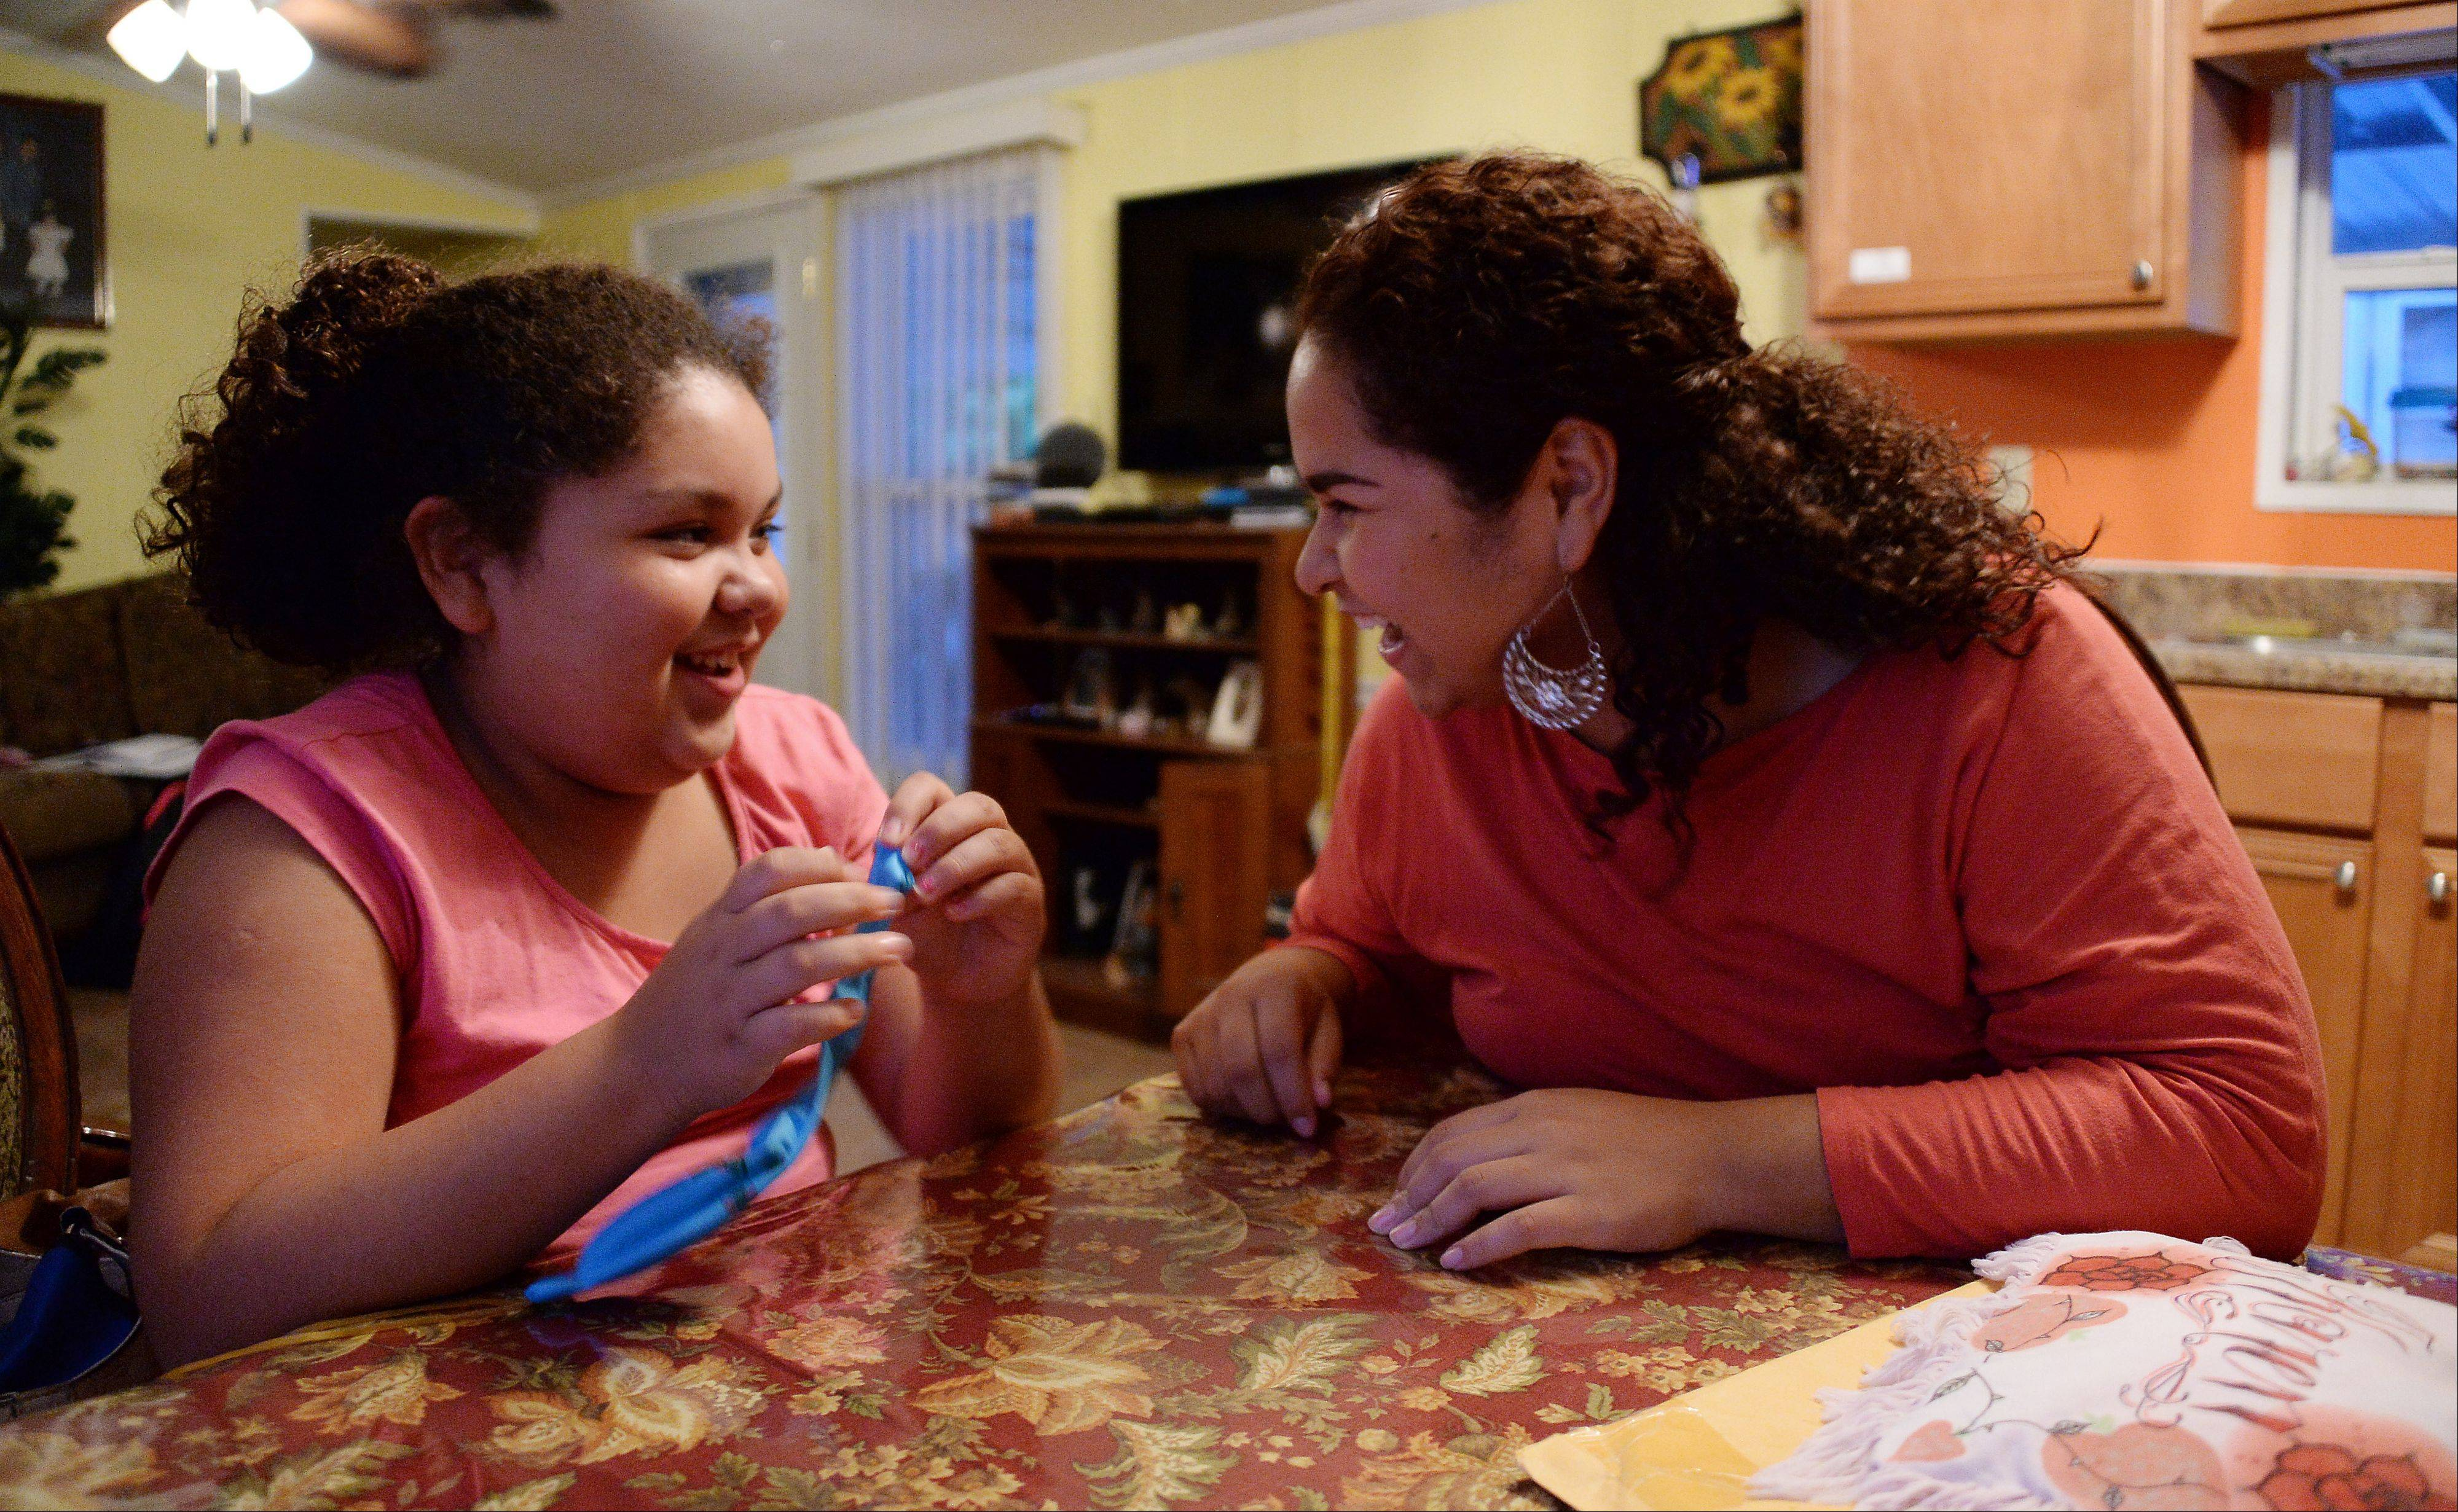 Greta, 12, left, and her sister Karen Ramirez, 22, who live near Des Plaines, share a laugh together at their dining room table as they talk about good times with their mother, Alicia.